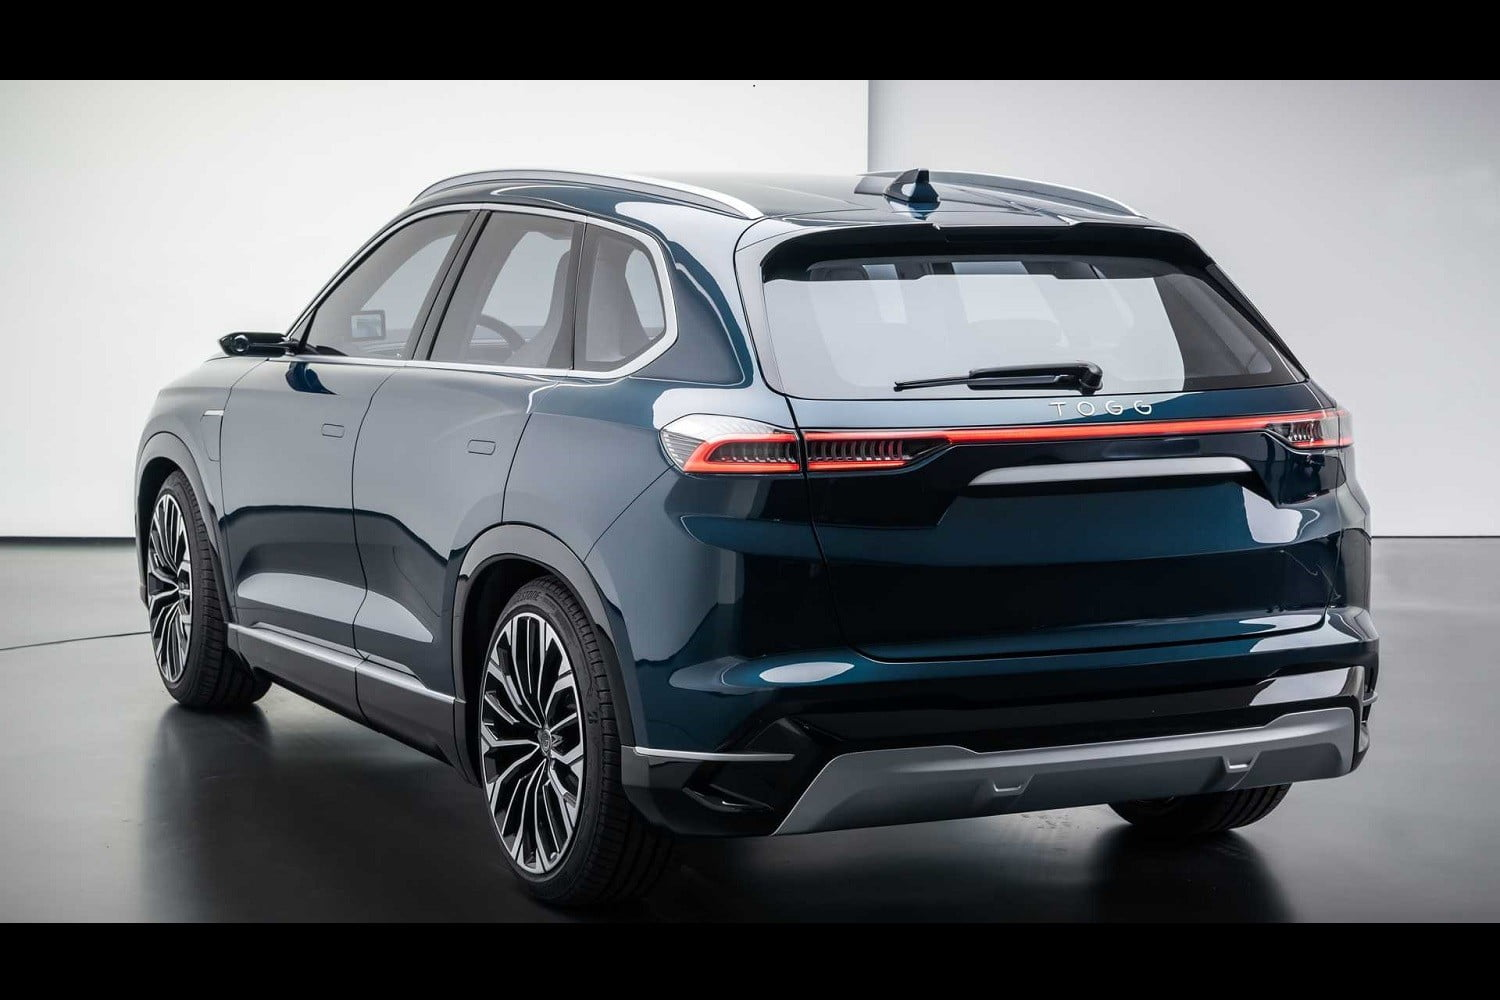 TOGG electric SUV rear view